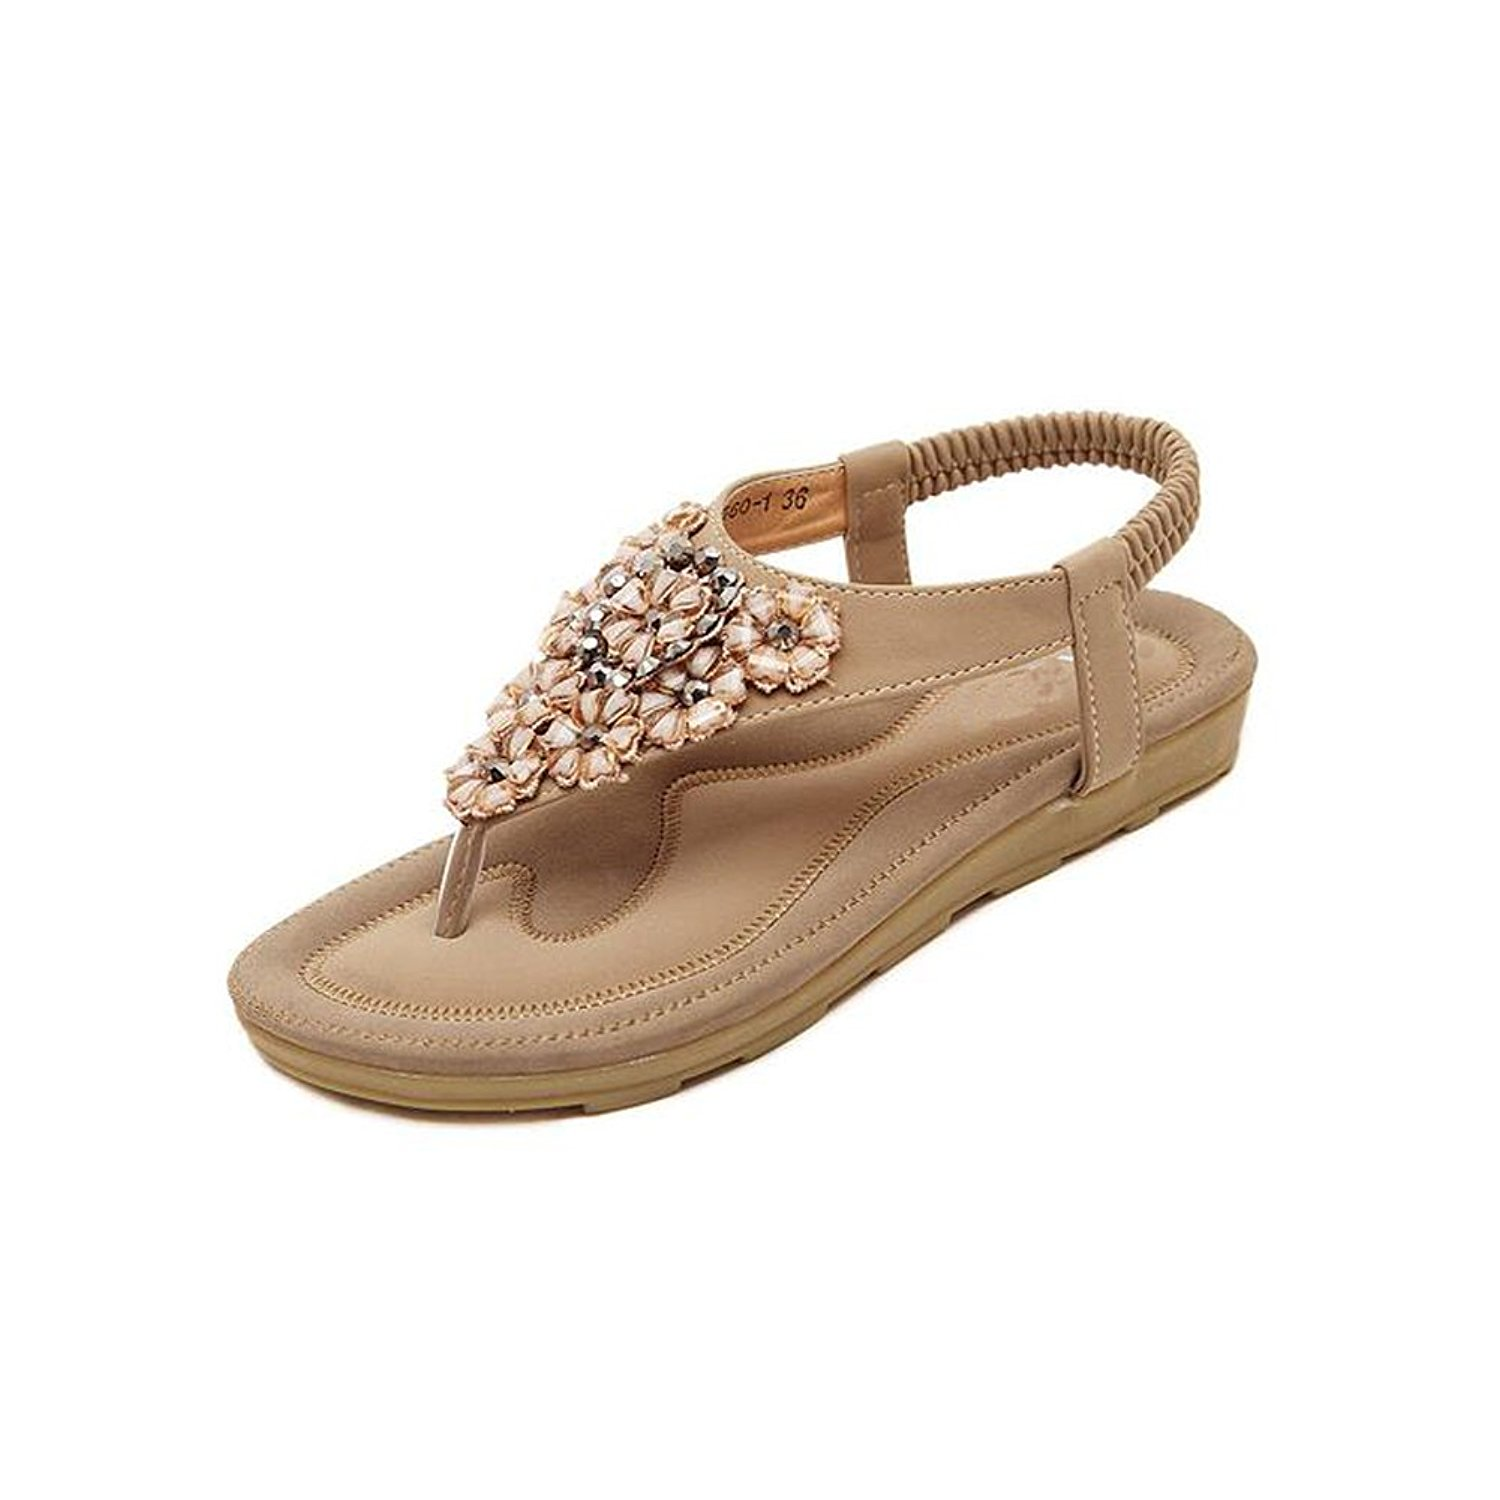 311607c7df512a Women Thongs Flip Flops Rhinestone Flower Synthetic Leather T-Strap Sandals